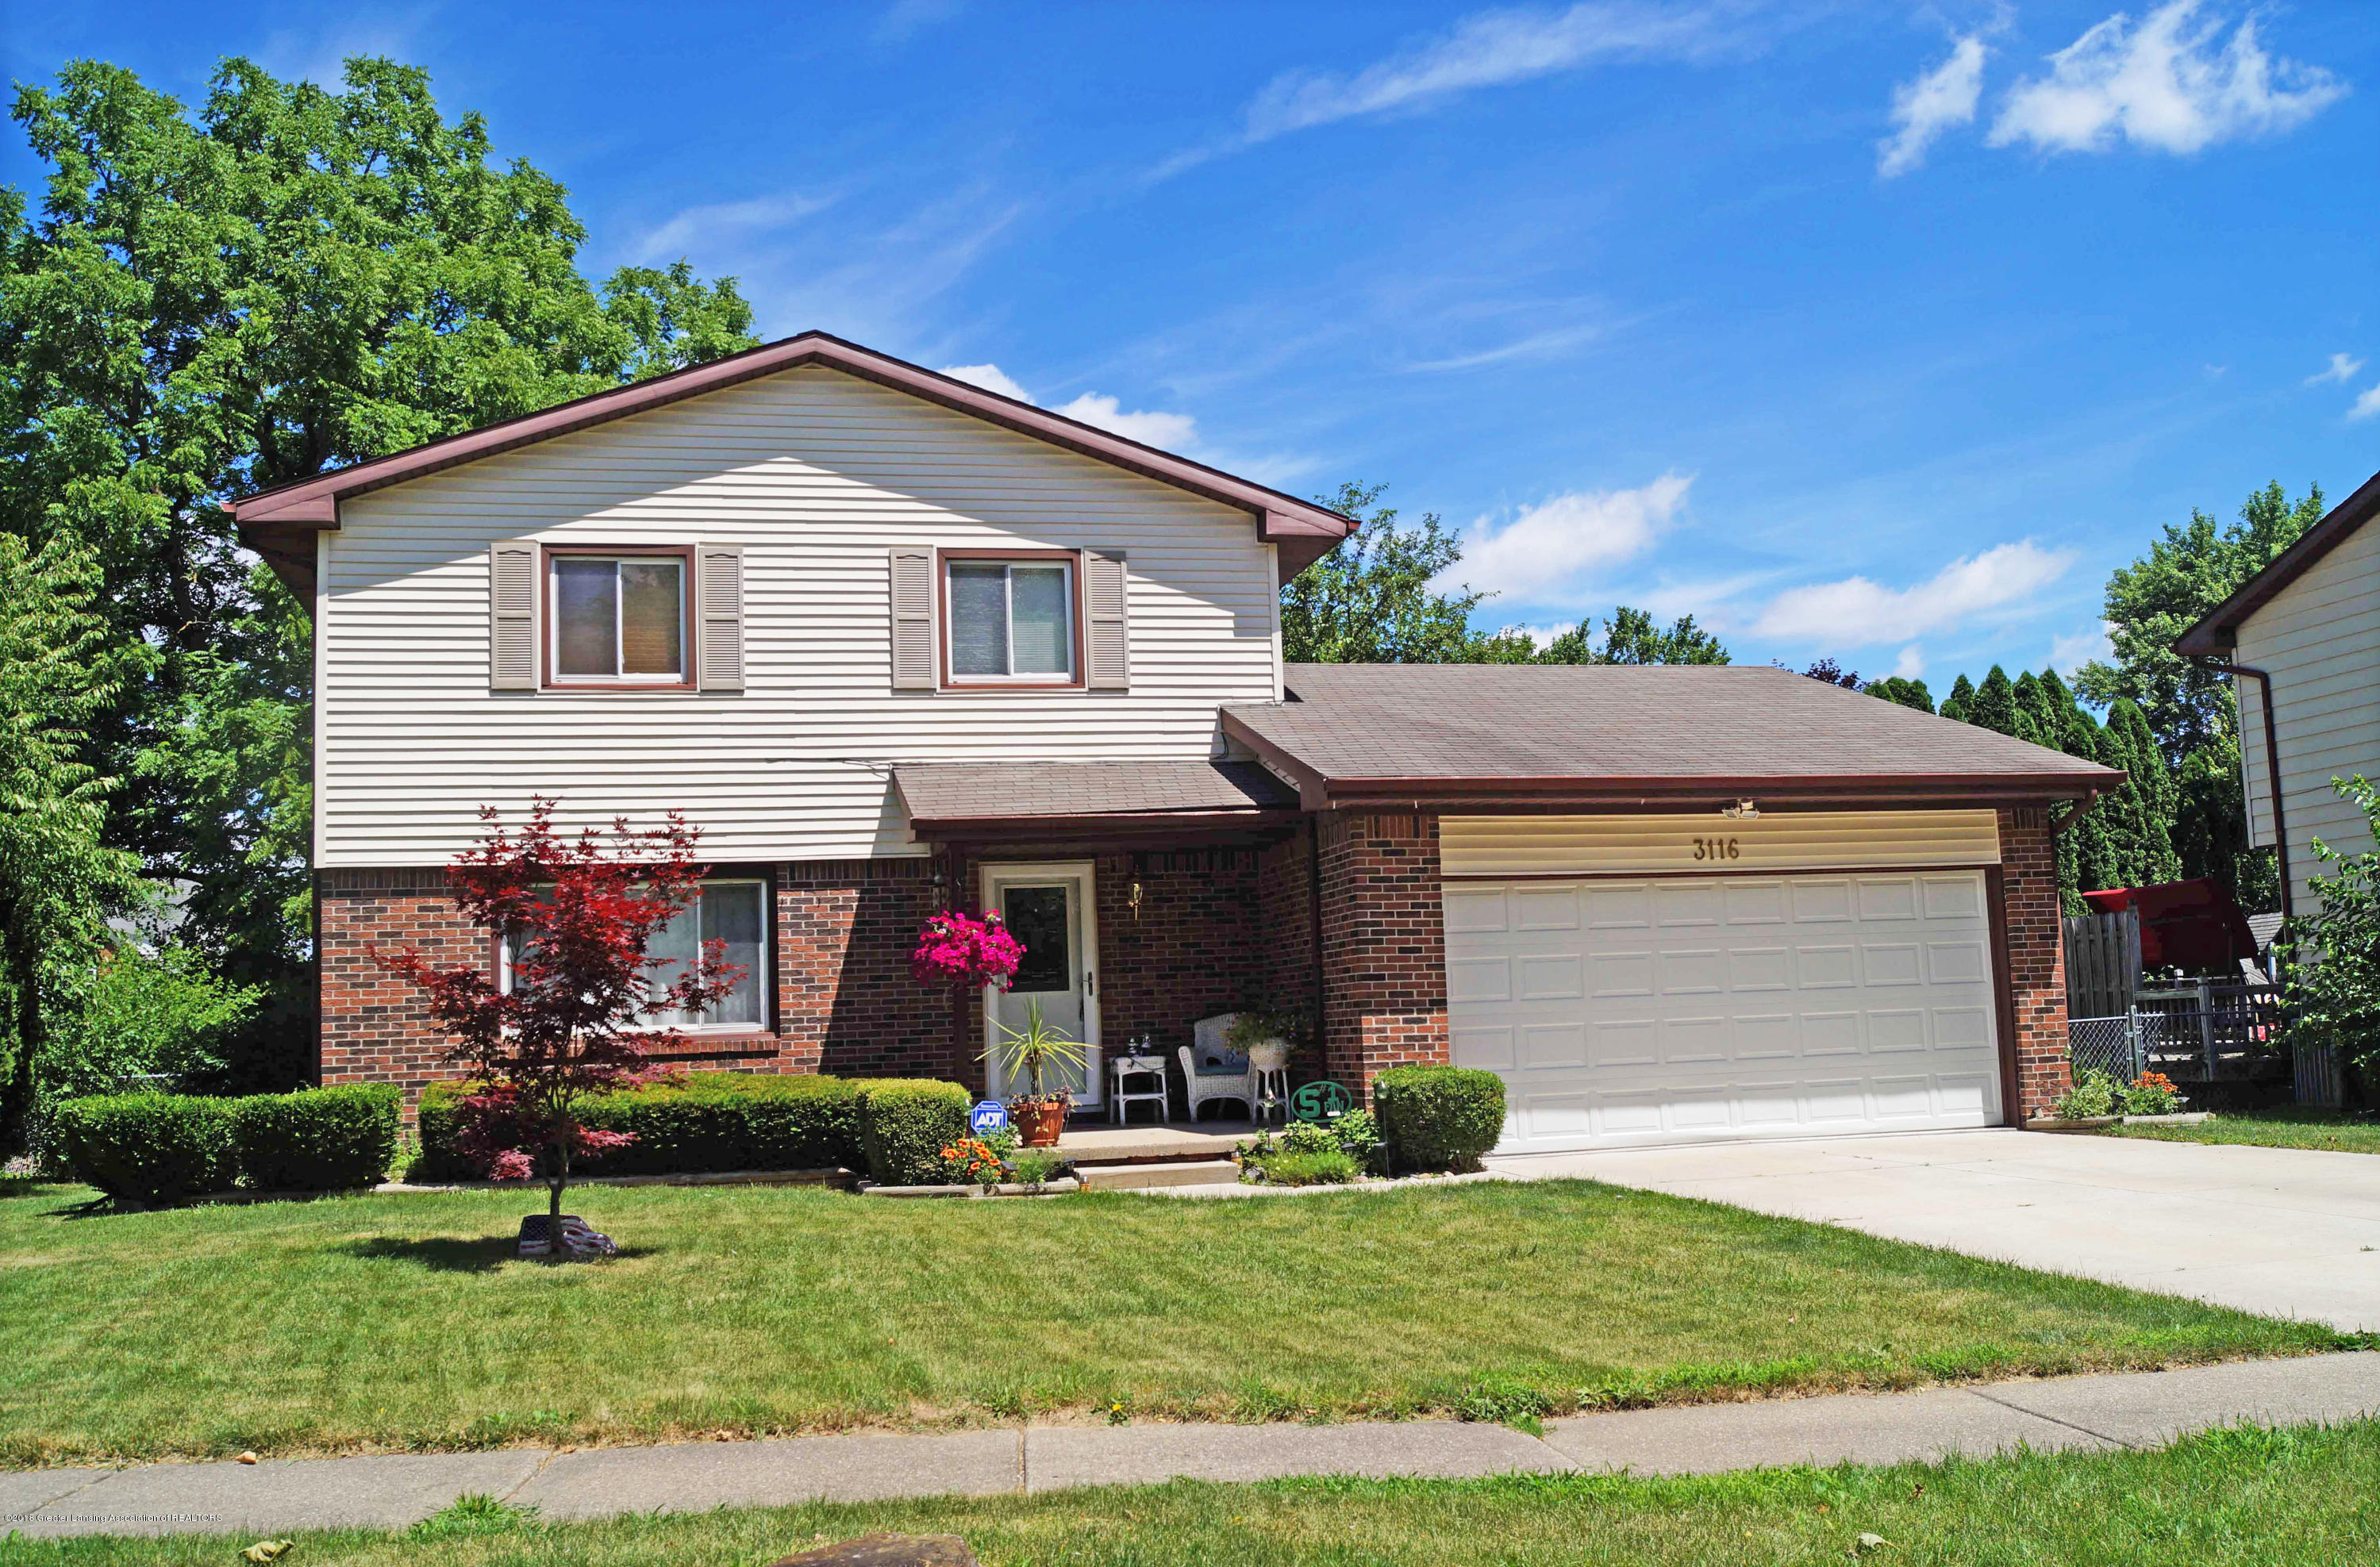 3116 Colchester Rd - FRONT - 1